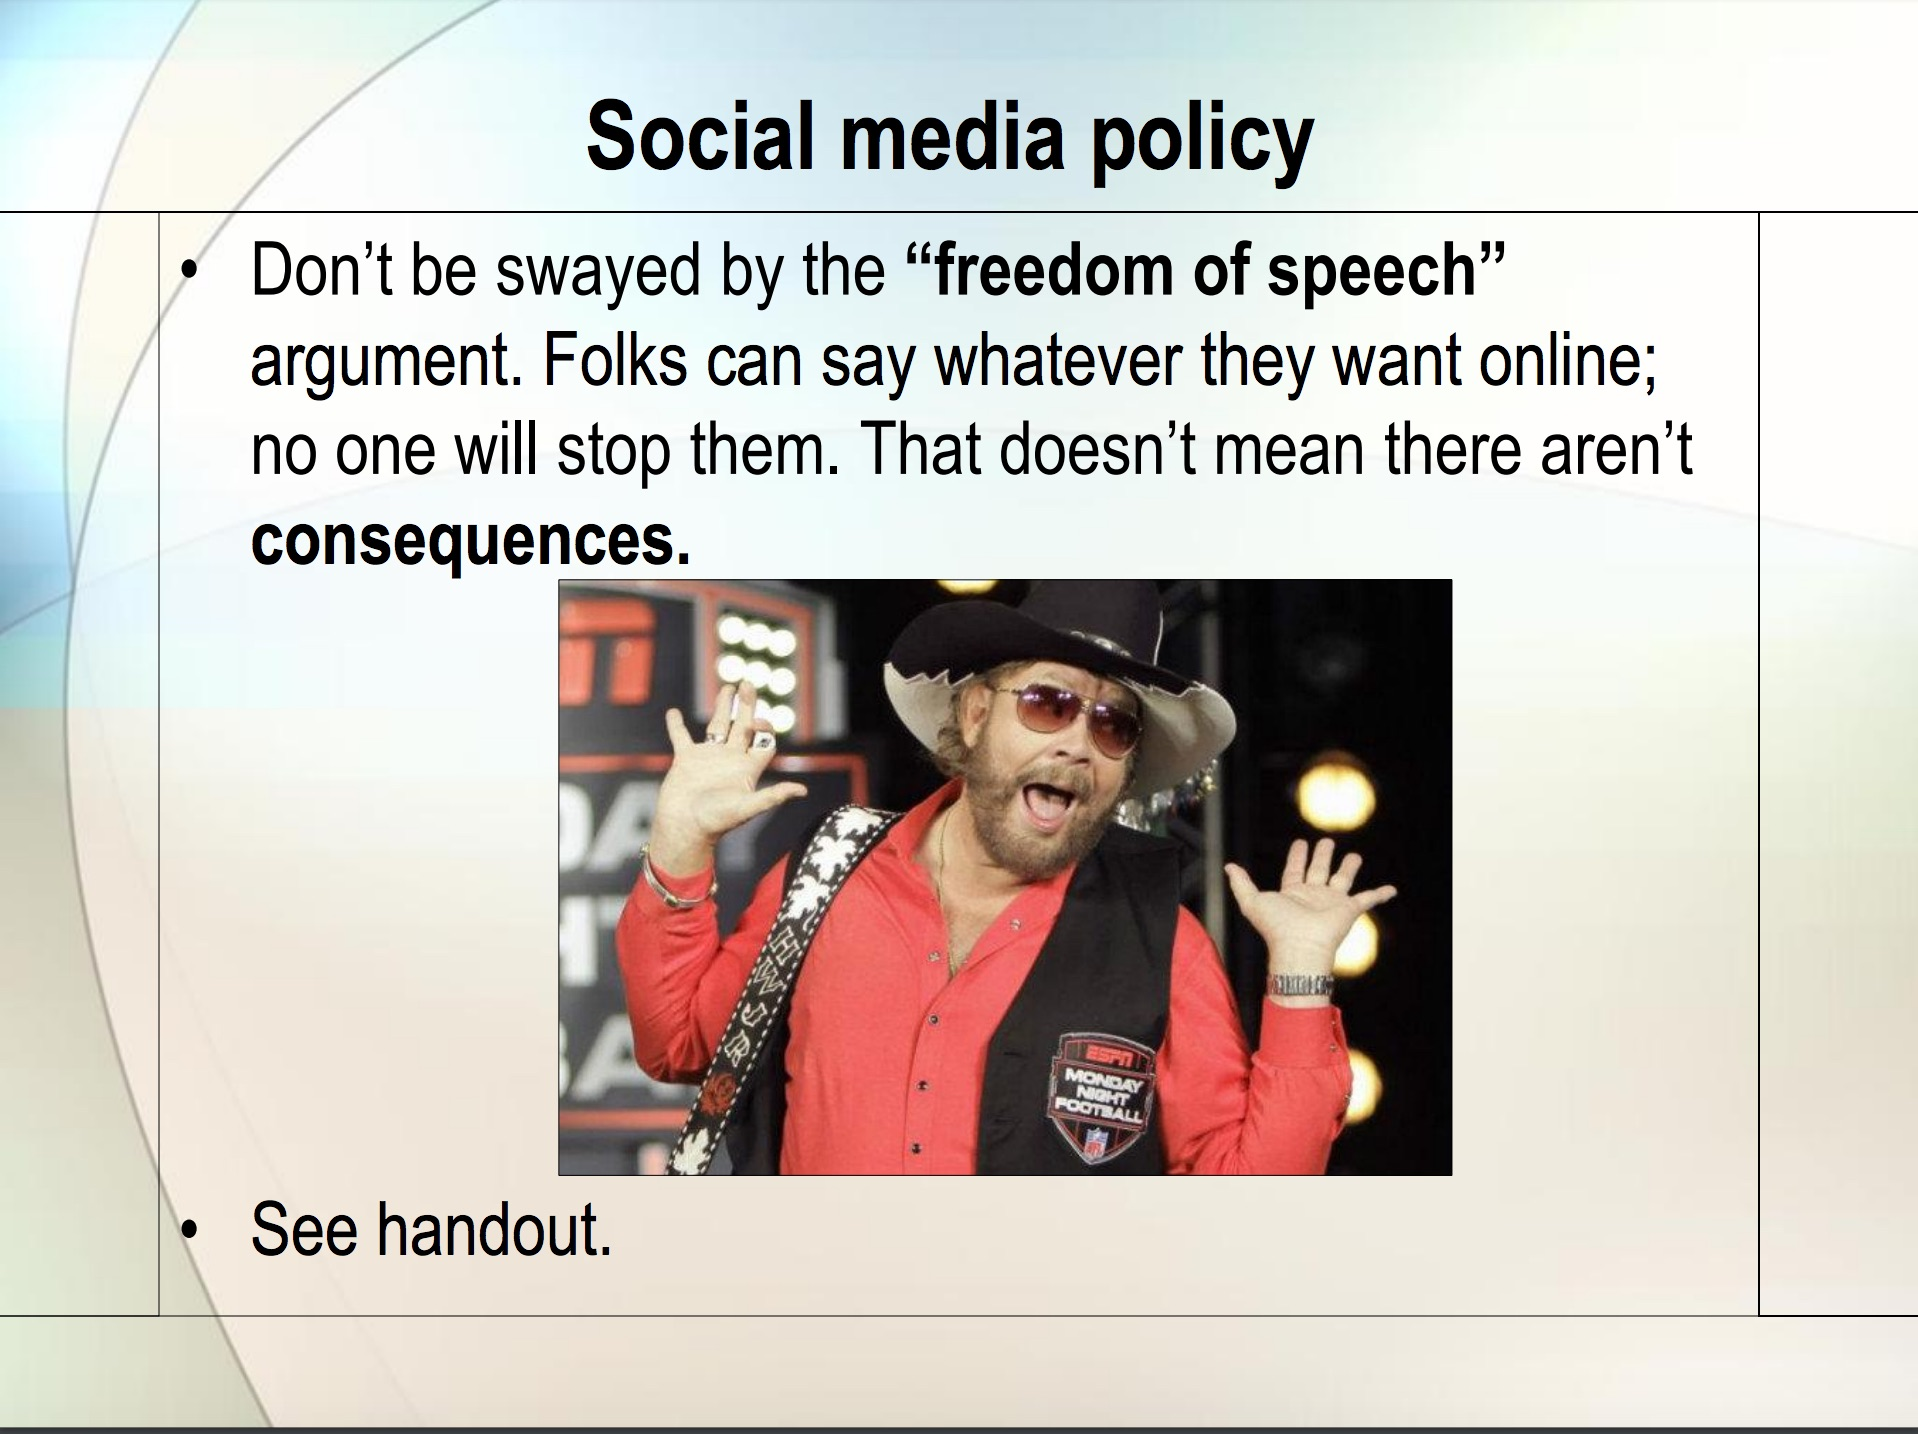 City Social Media Policy Power Point (Provided by City of San Angelo)